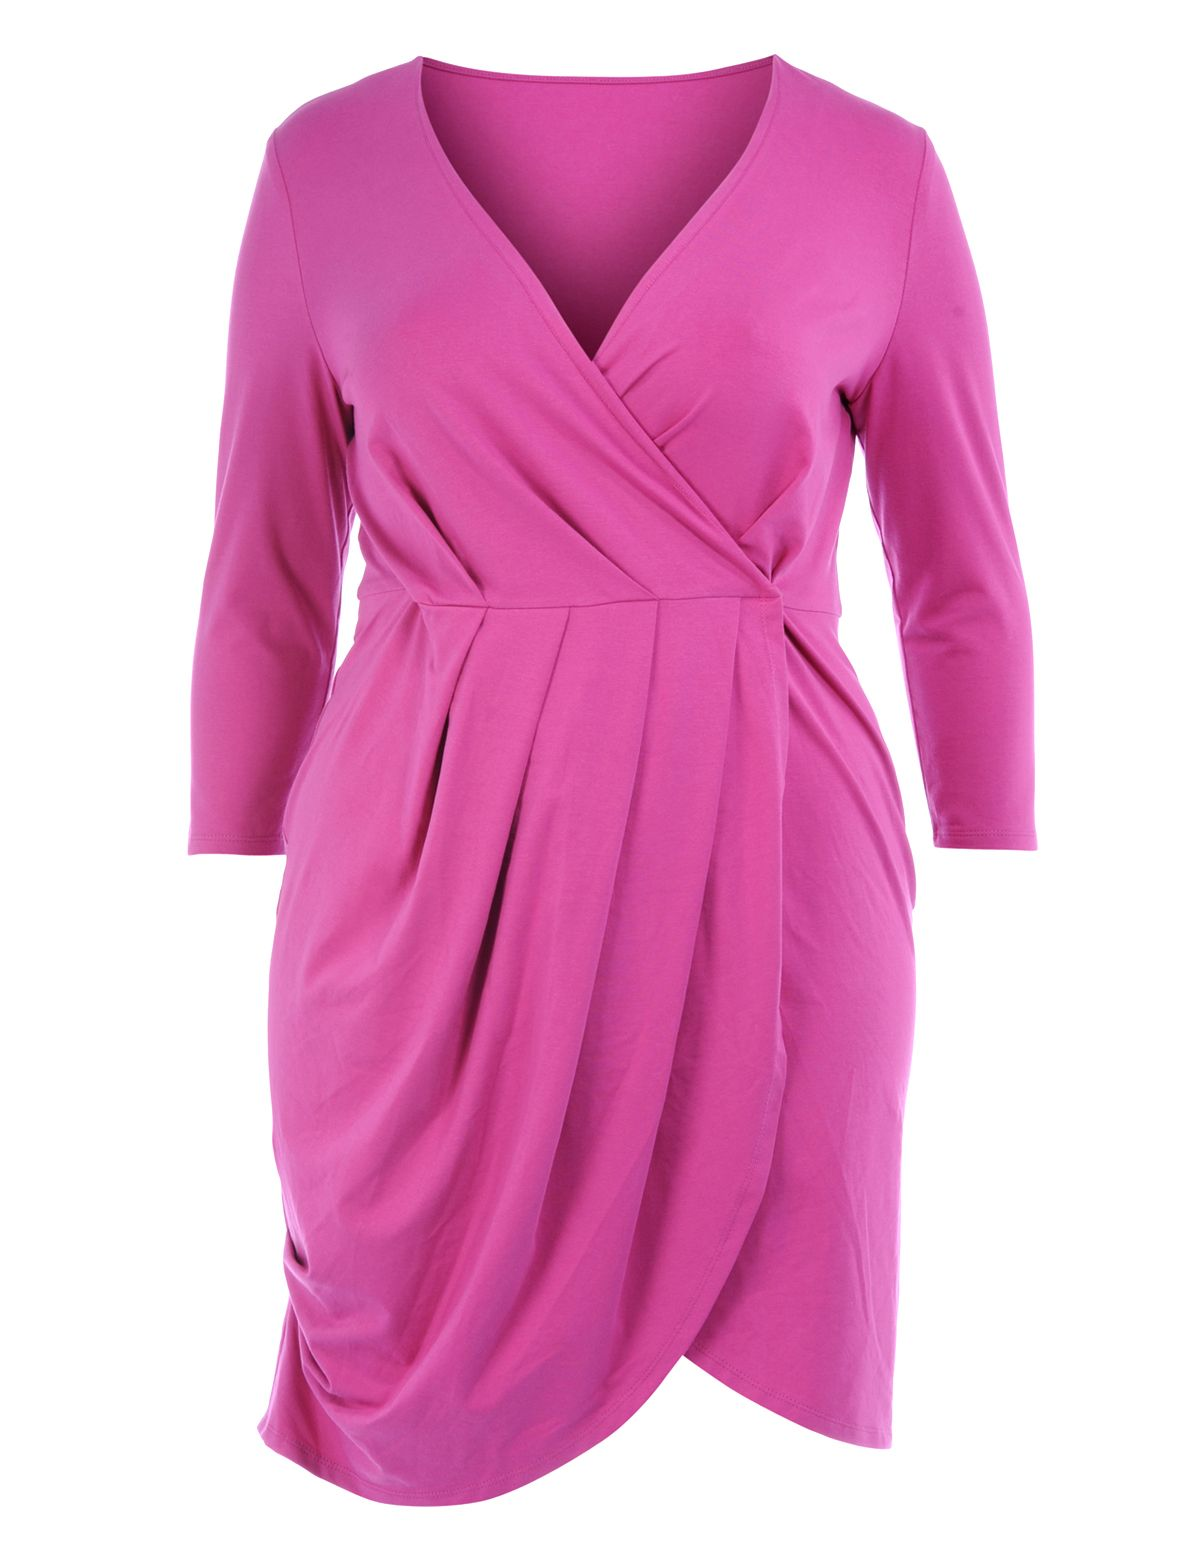 Wrap dress in Hot Pink designed by Manon Baptiste | {STYLE} for ...